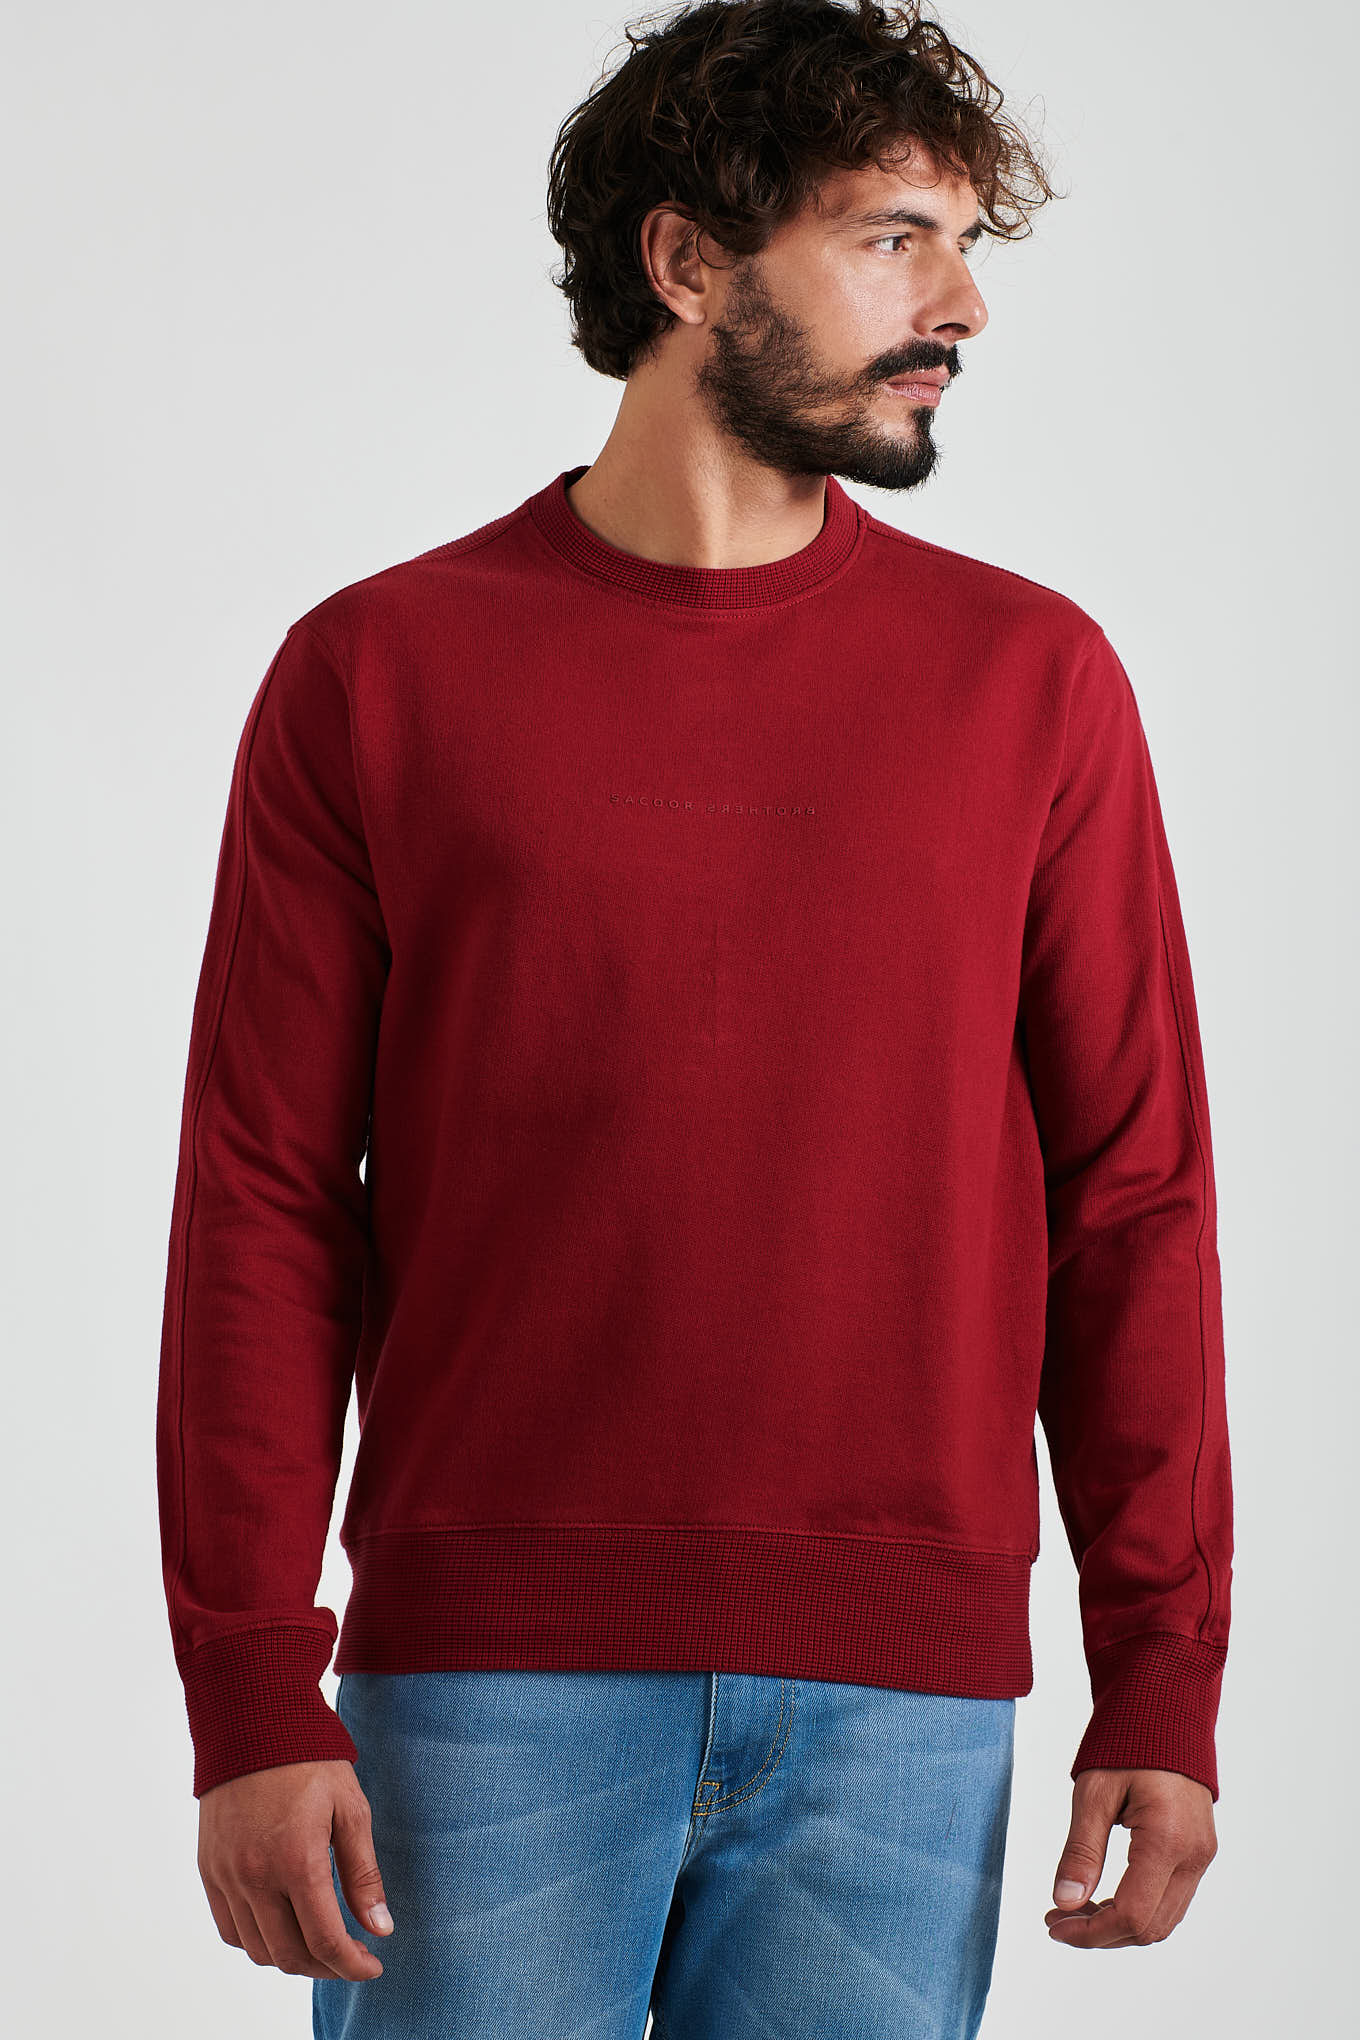 Sweatshirt Plum Sport Man